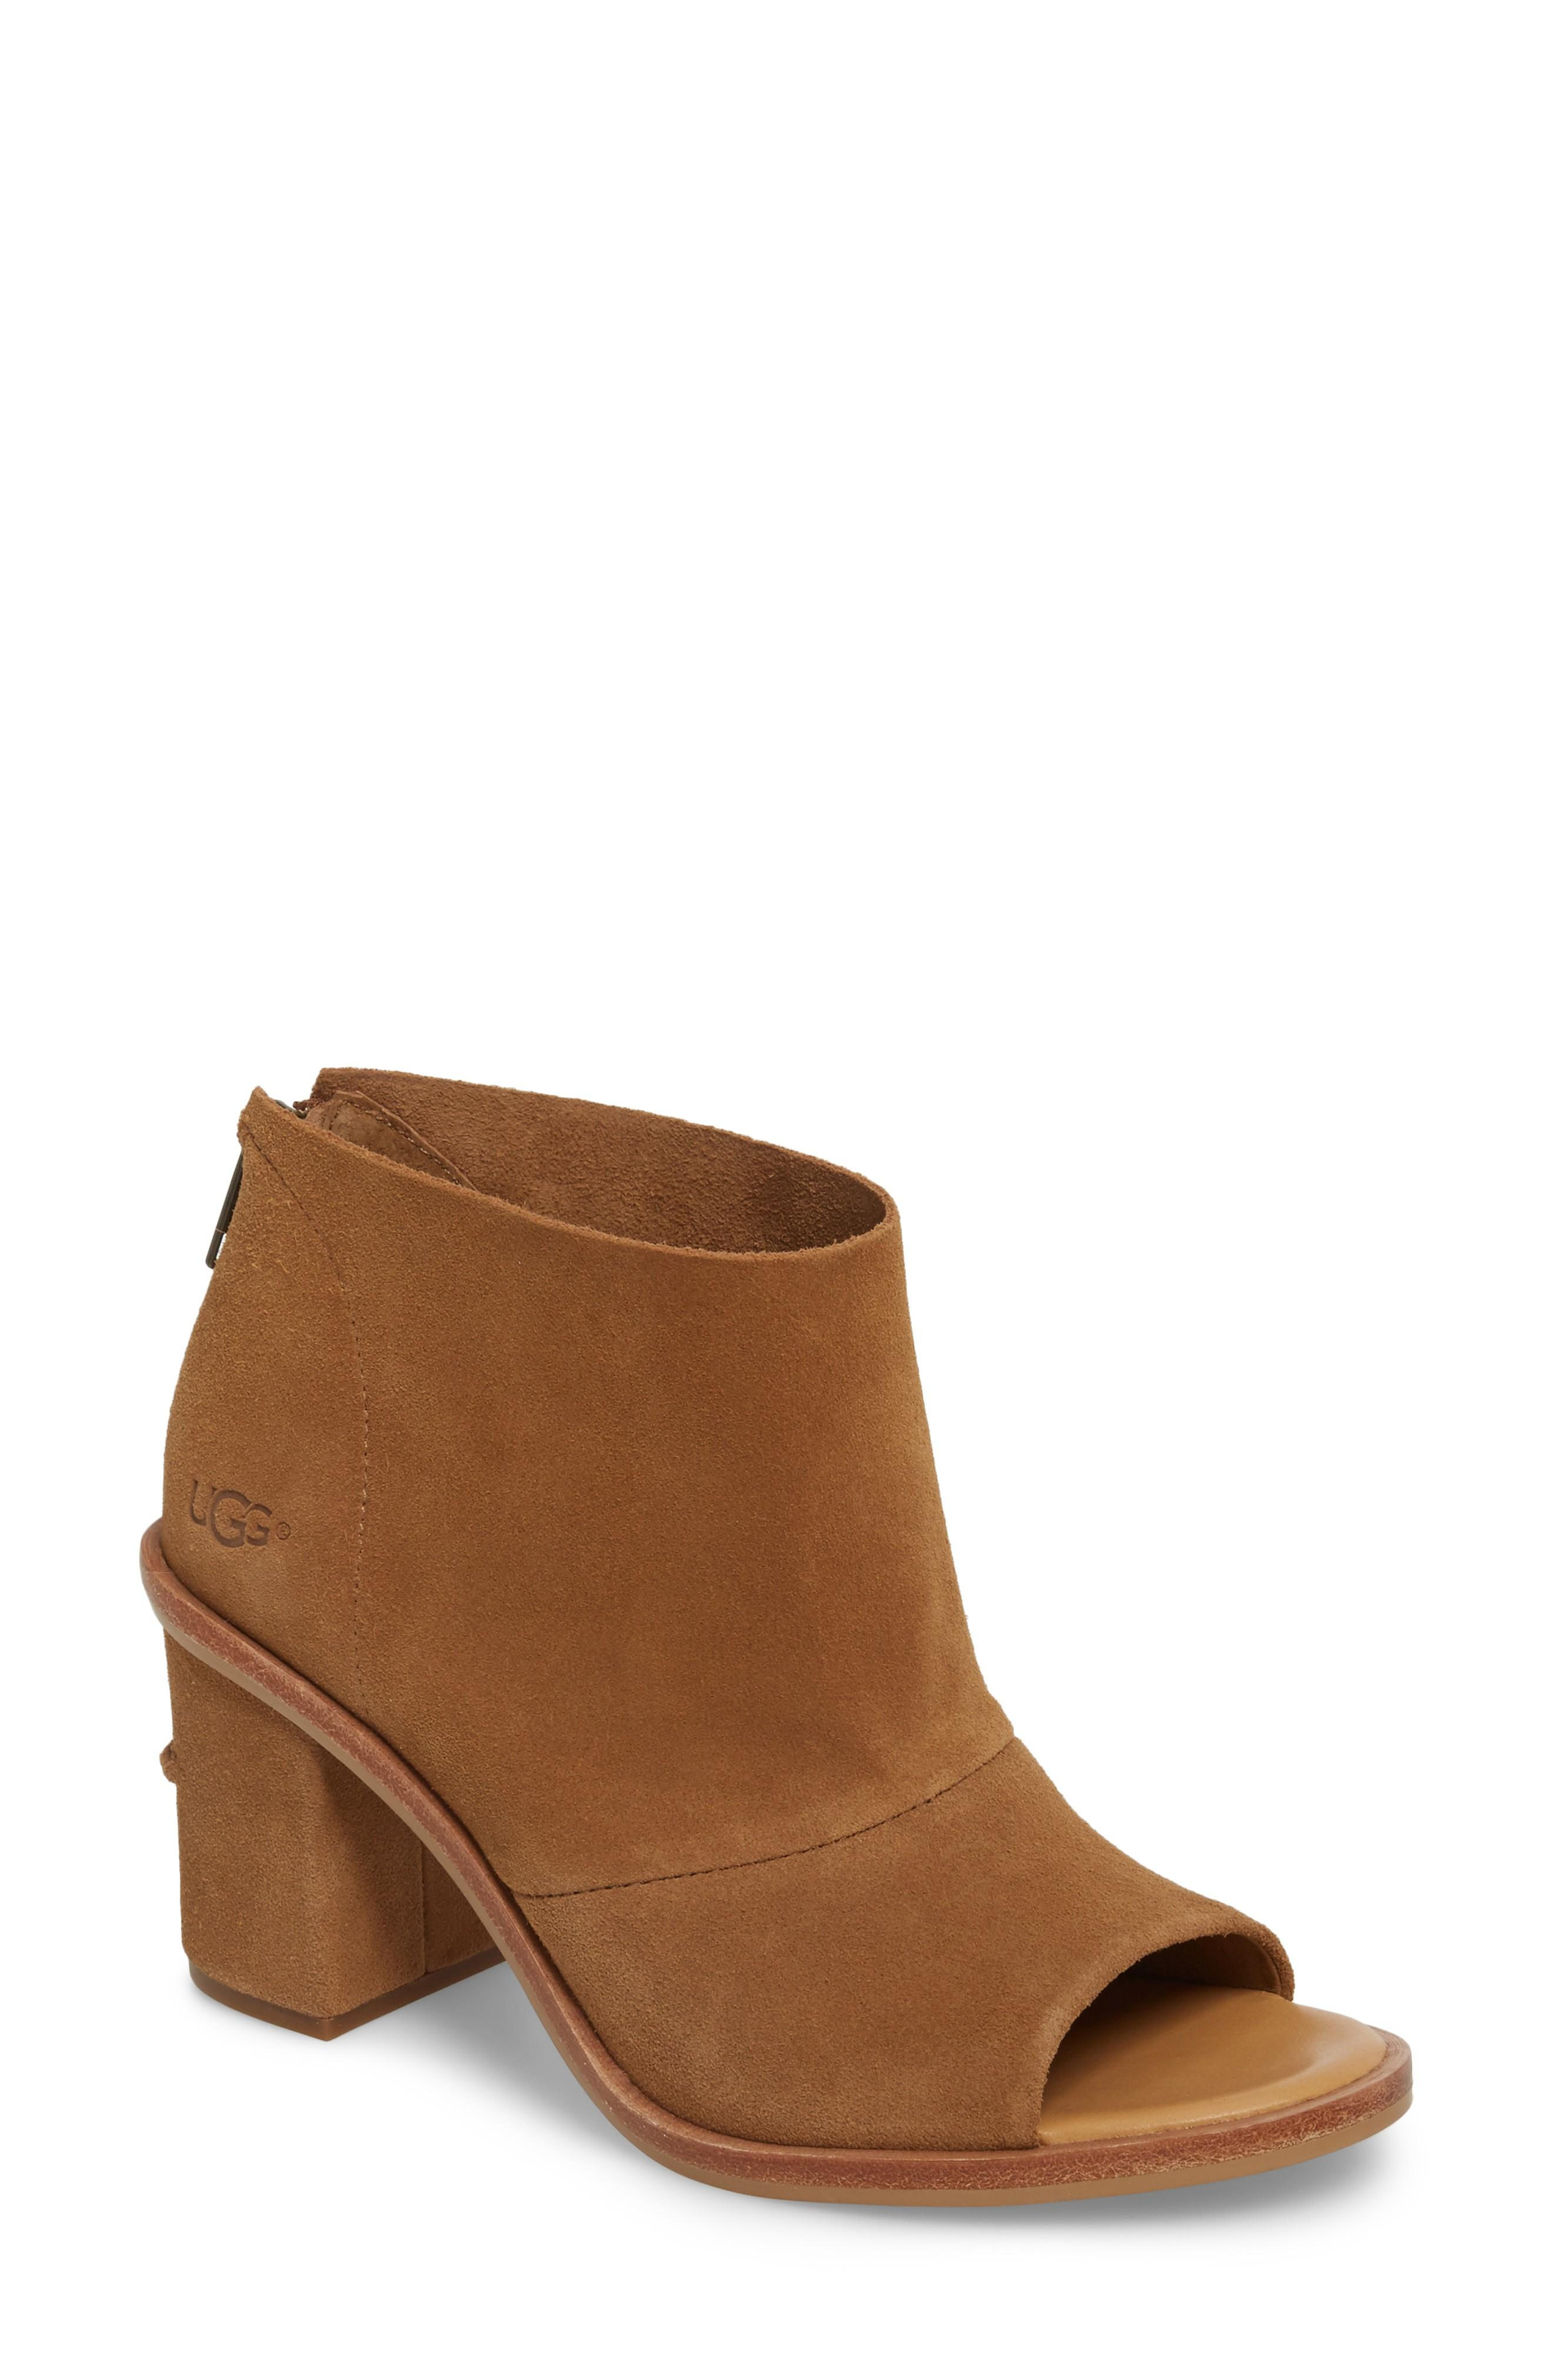 4c1568e288e Ugg Ginger Peep Toe Bootie in Chestnut Suede